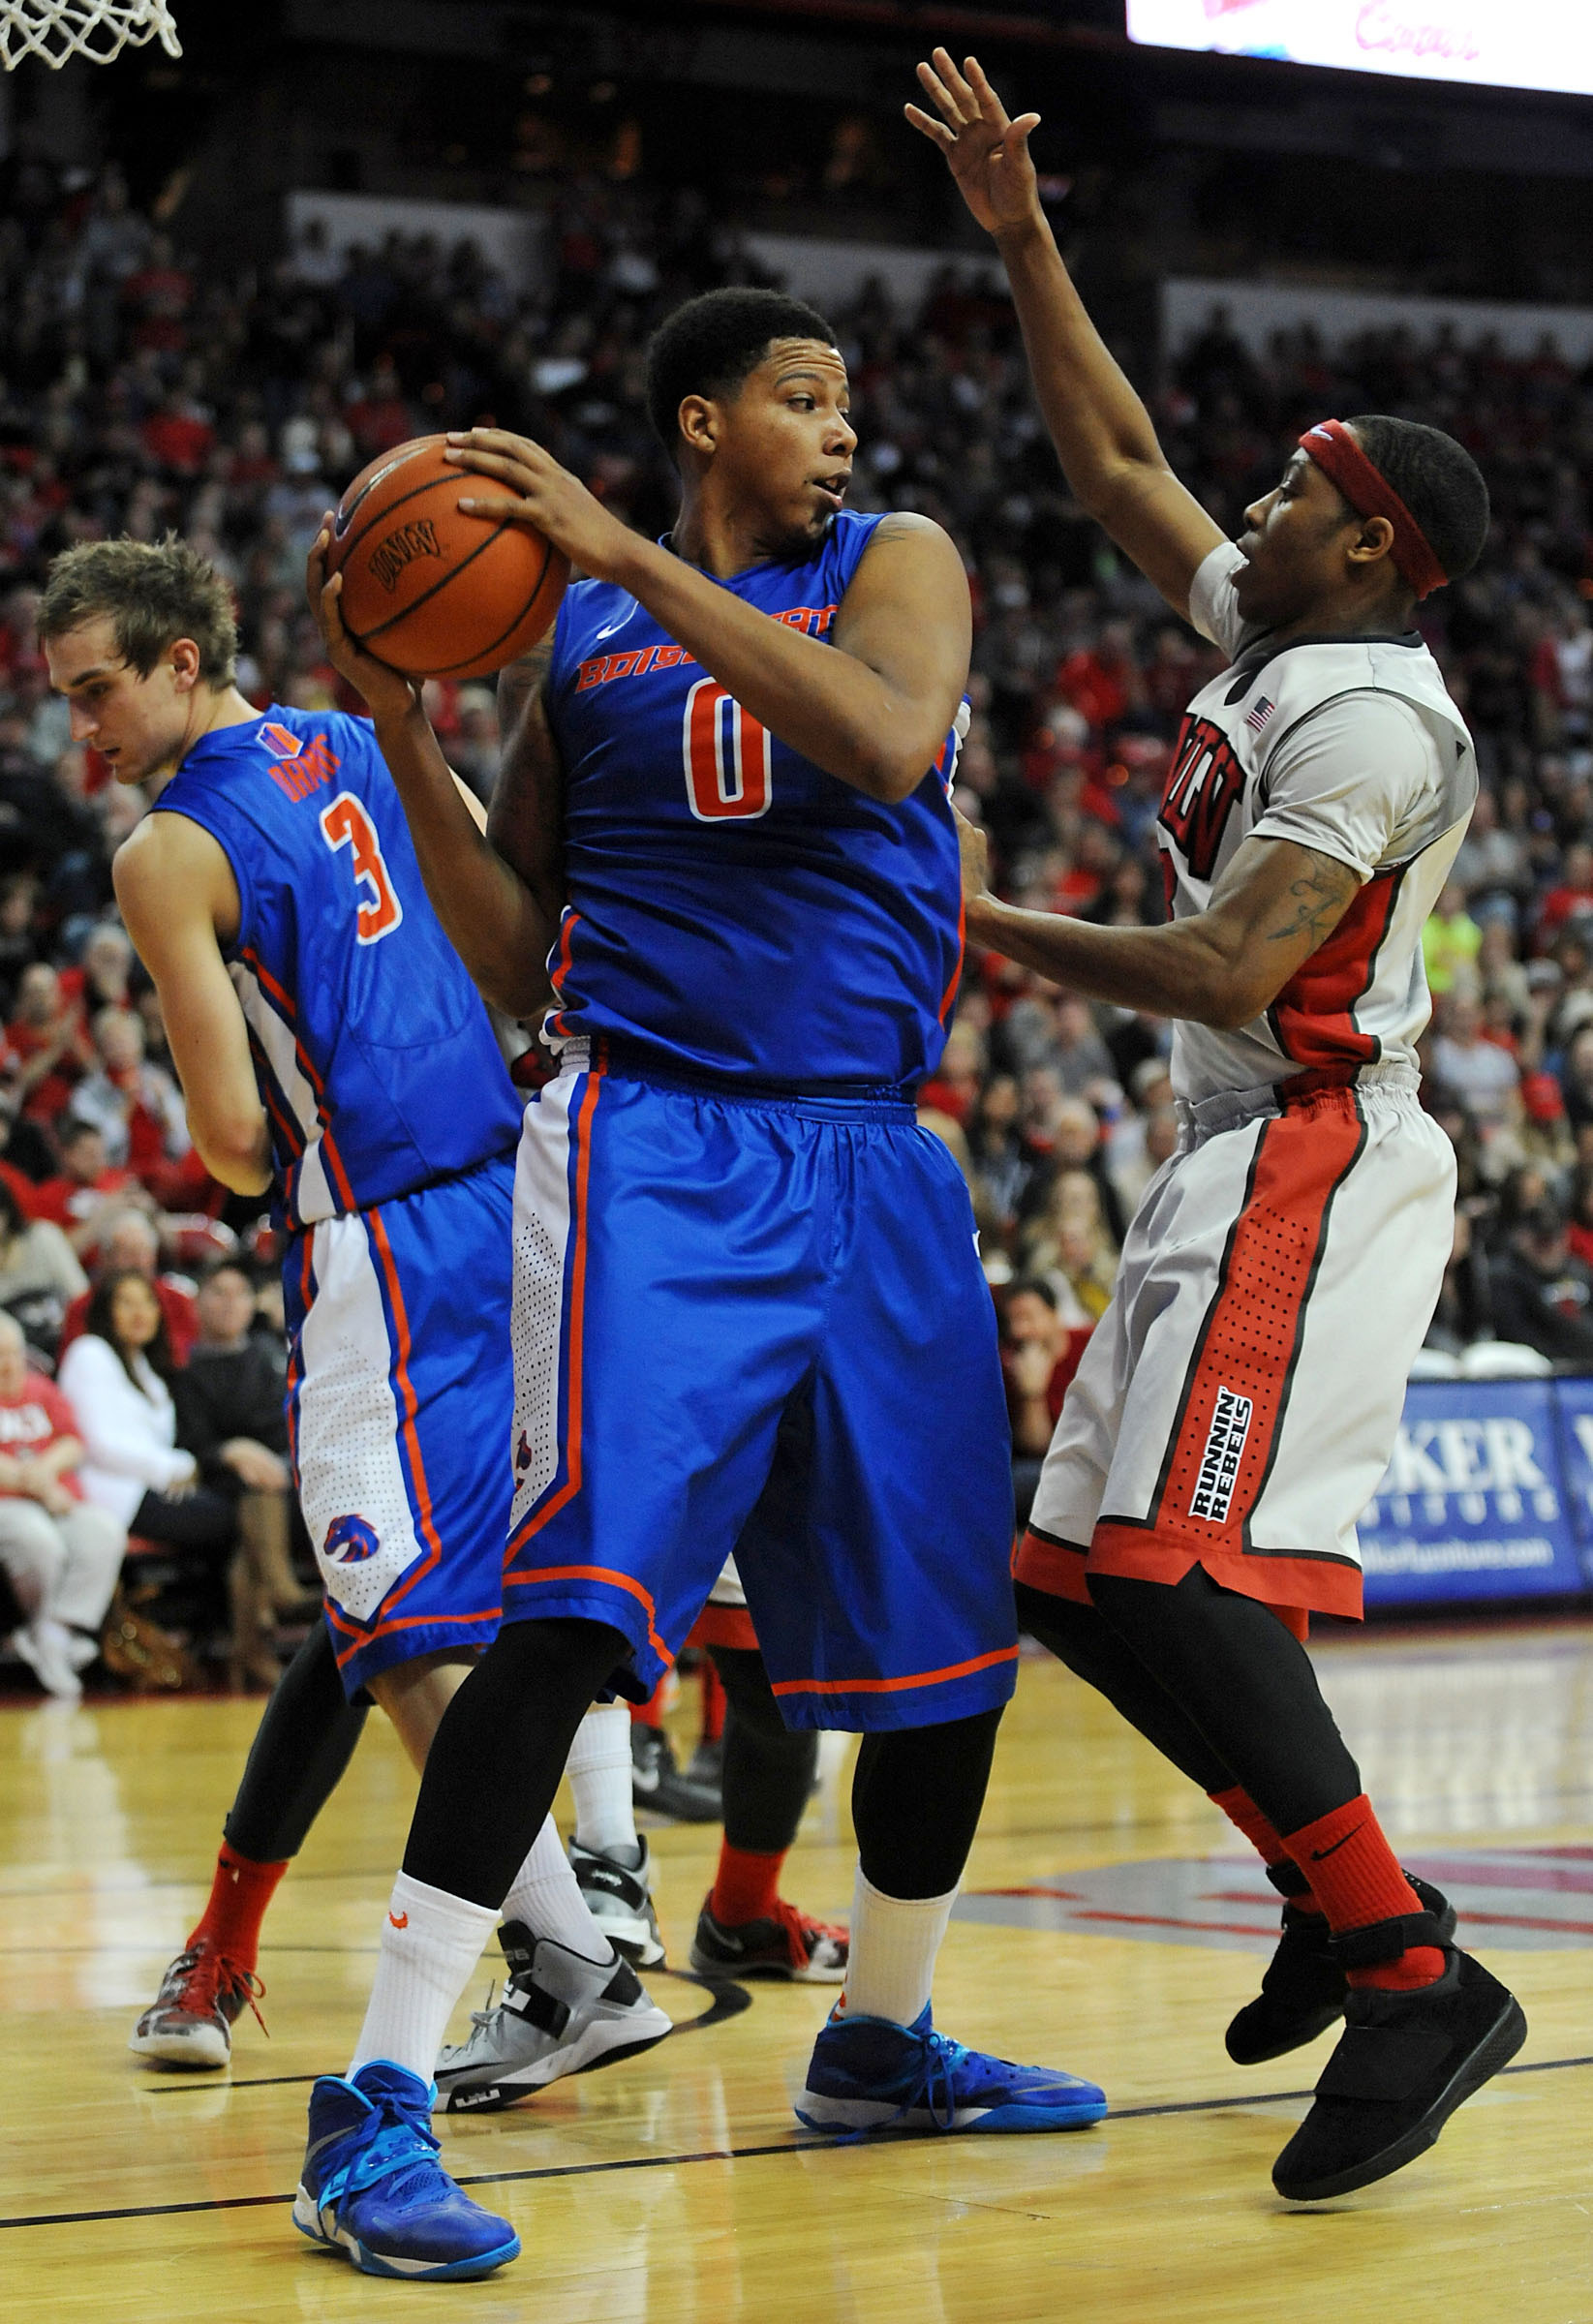 Senior forward Ryan Watkins posted 14 points and 12 rebounds in Saturday's win.